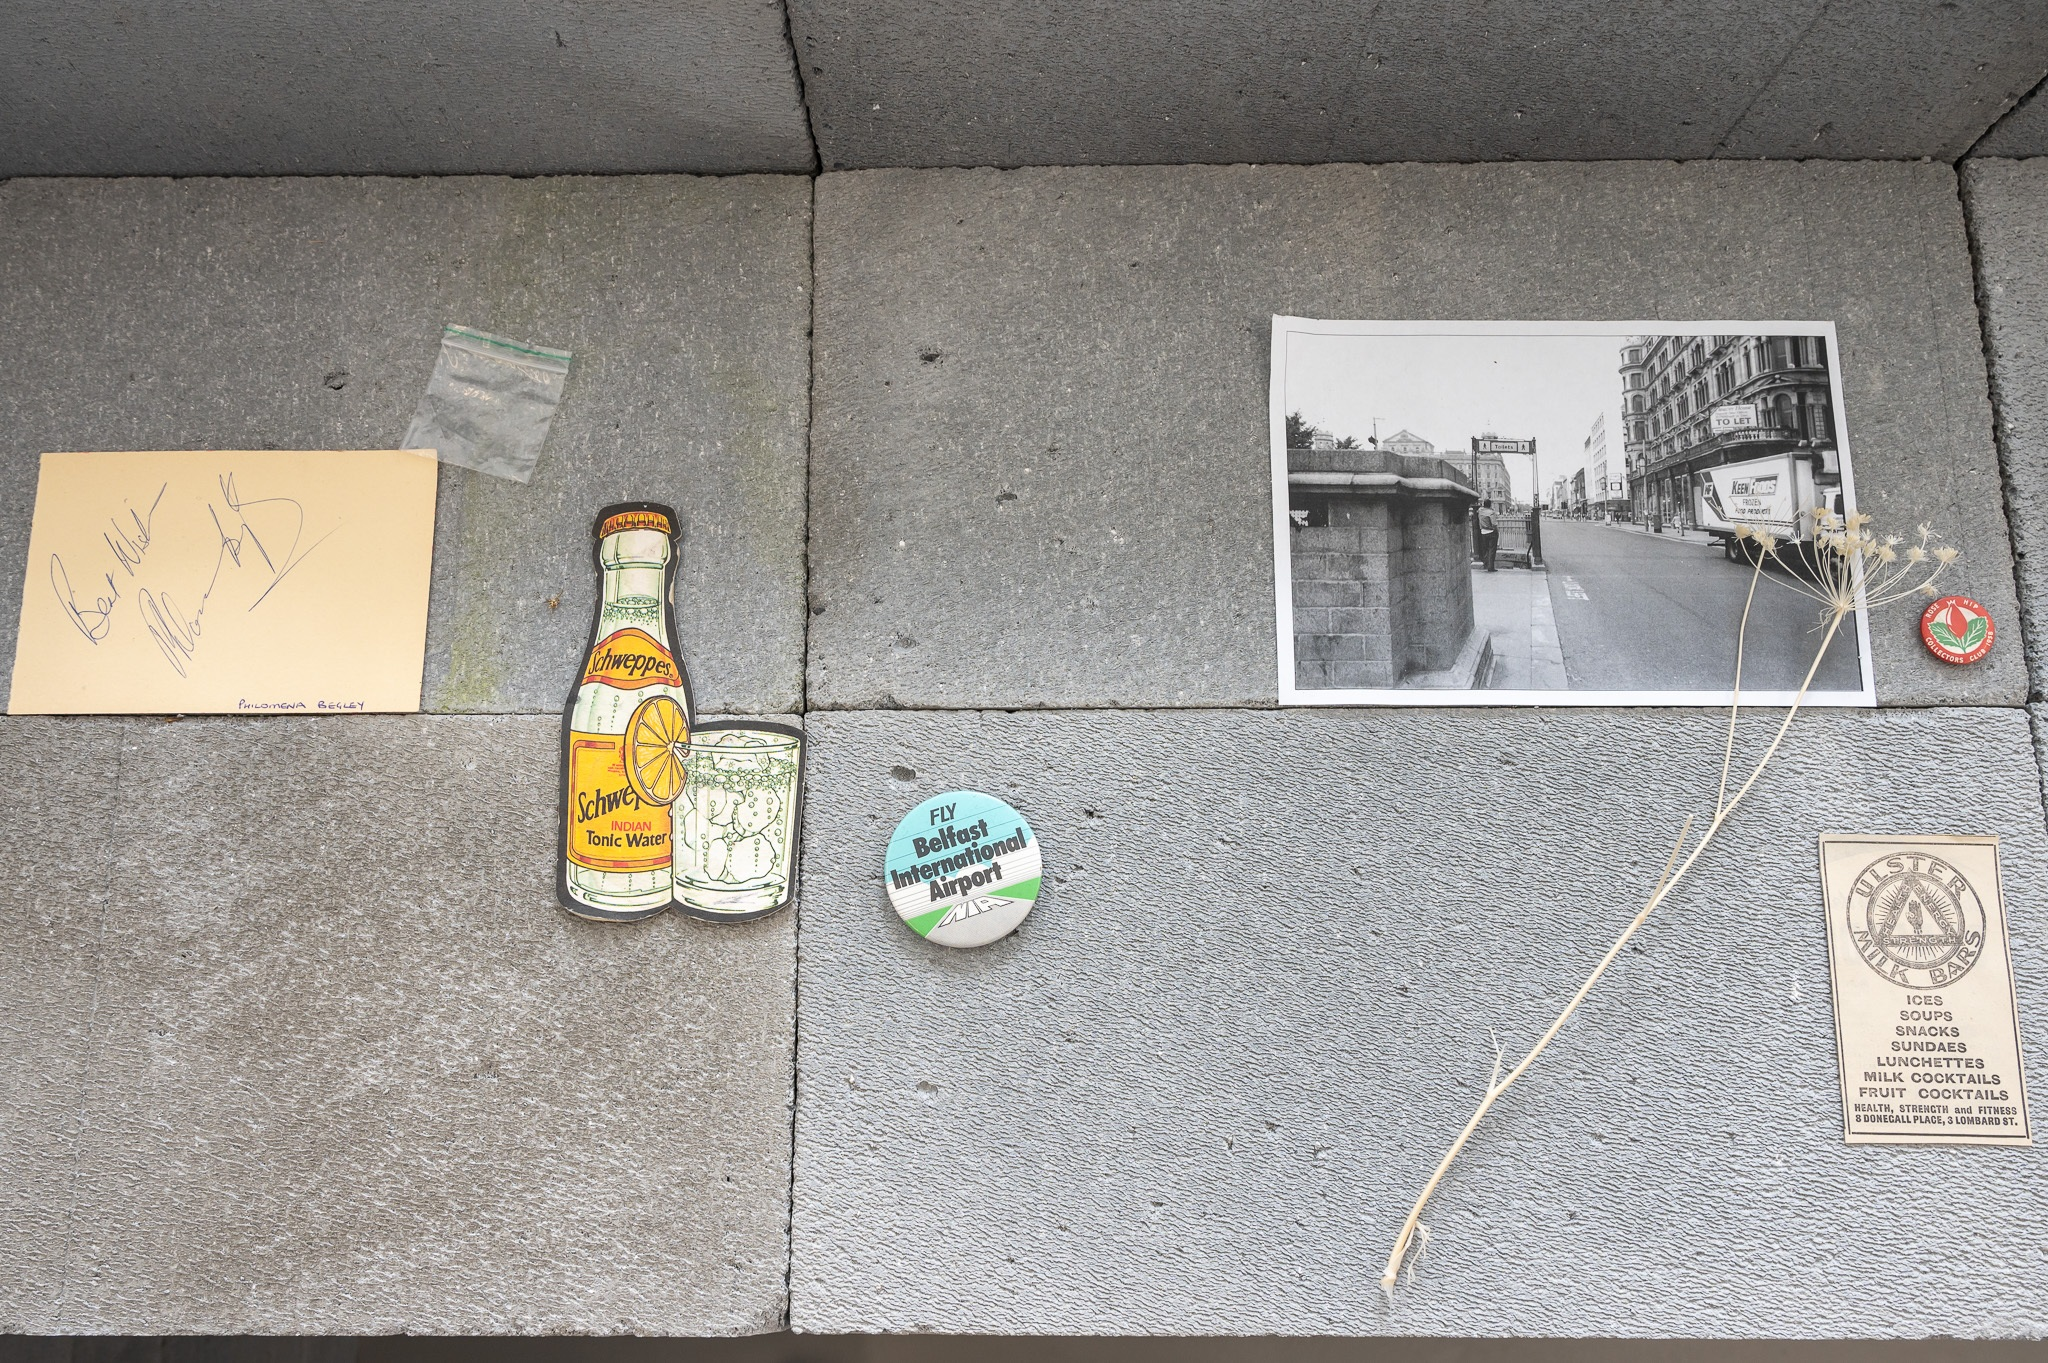 'Irish Modernisms' Gallery 1 shot of 'Modern Convenience' (2021) by Ben Weir and 'Death of the Banshee' (2021) by Phillip McCrilly